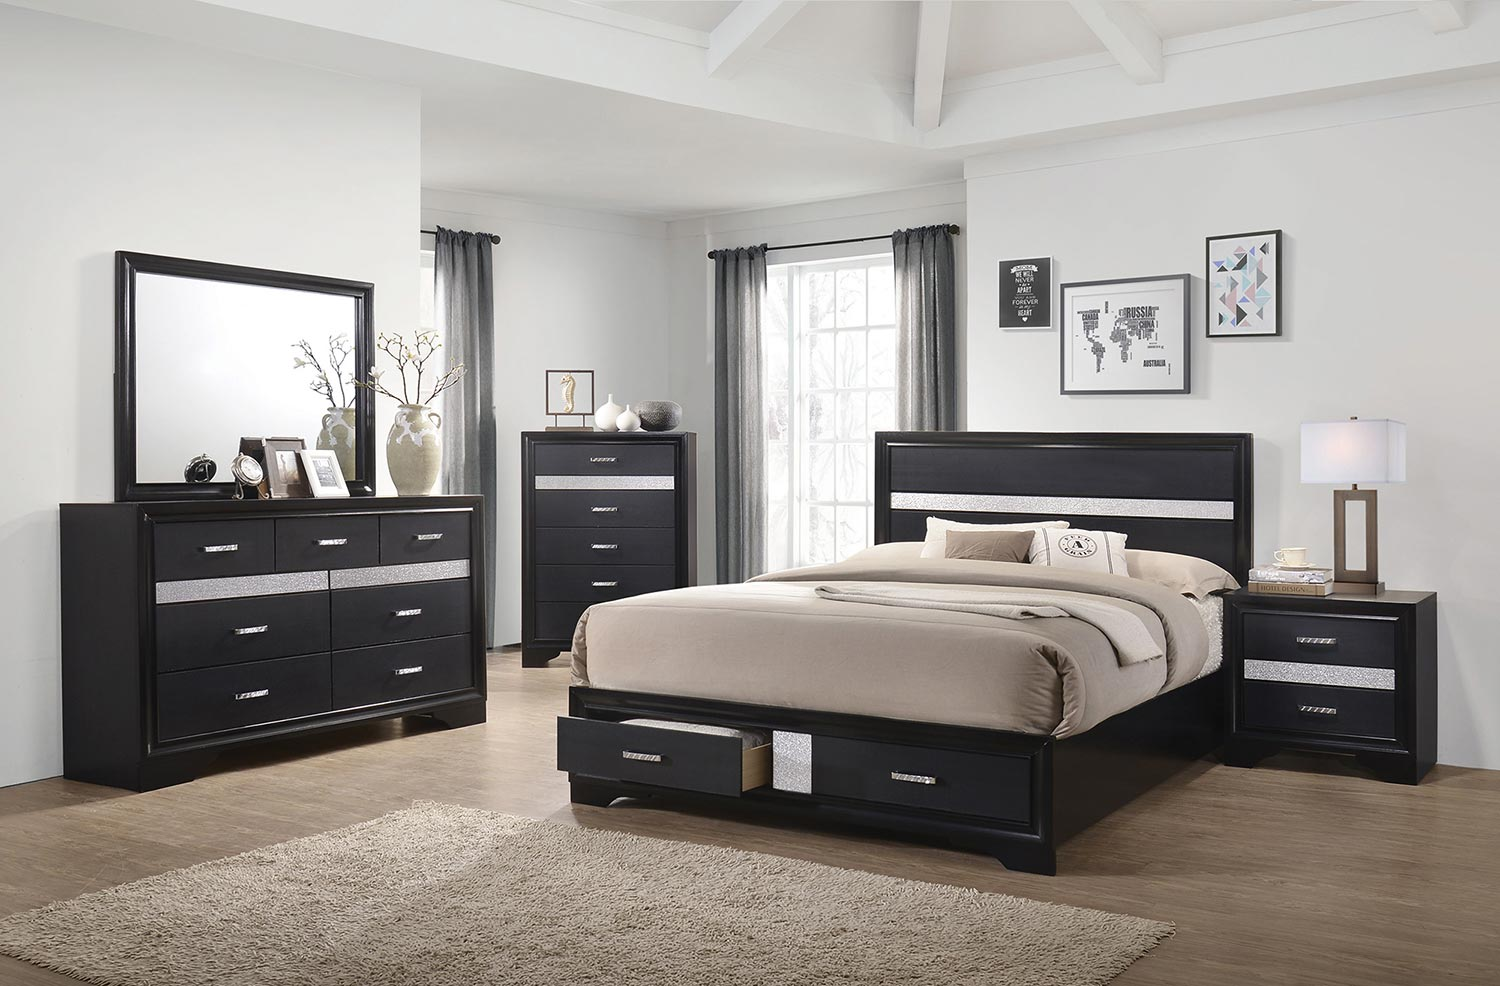 Coaster Miranda Bedroom Set - Black